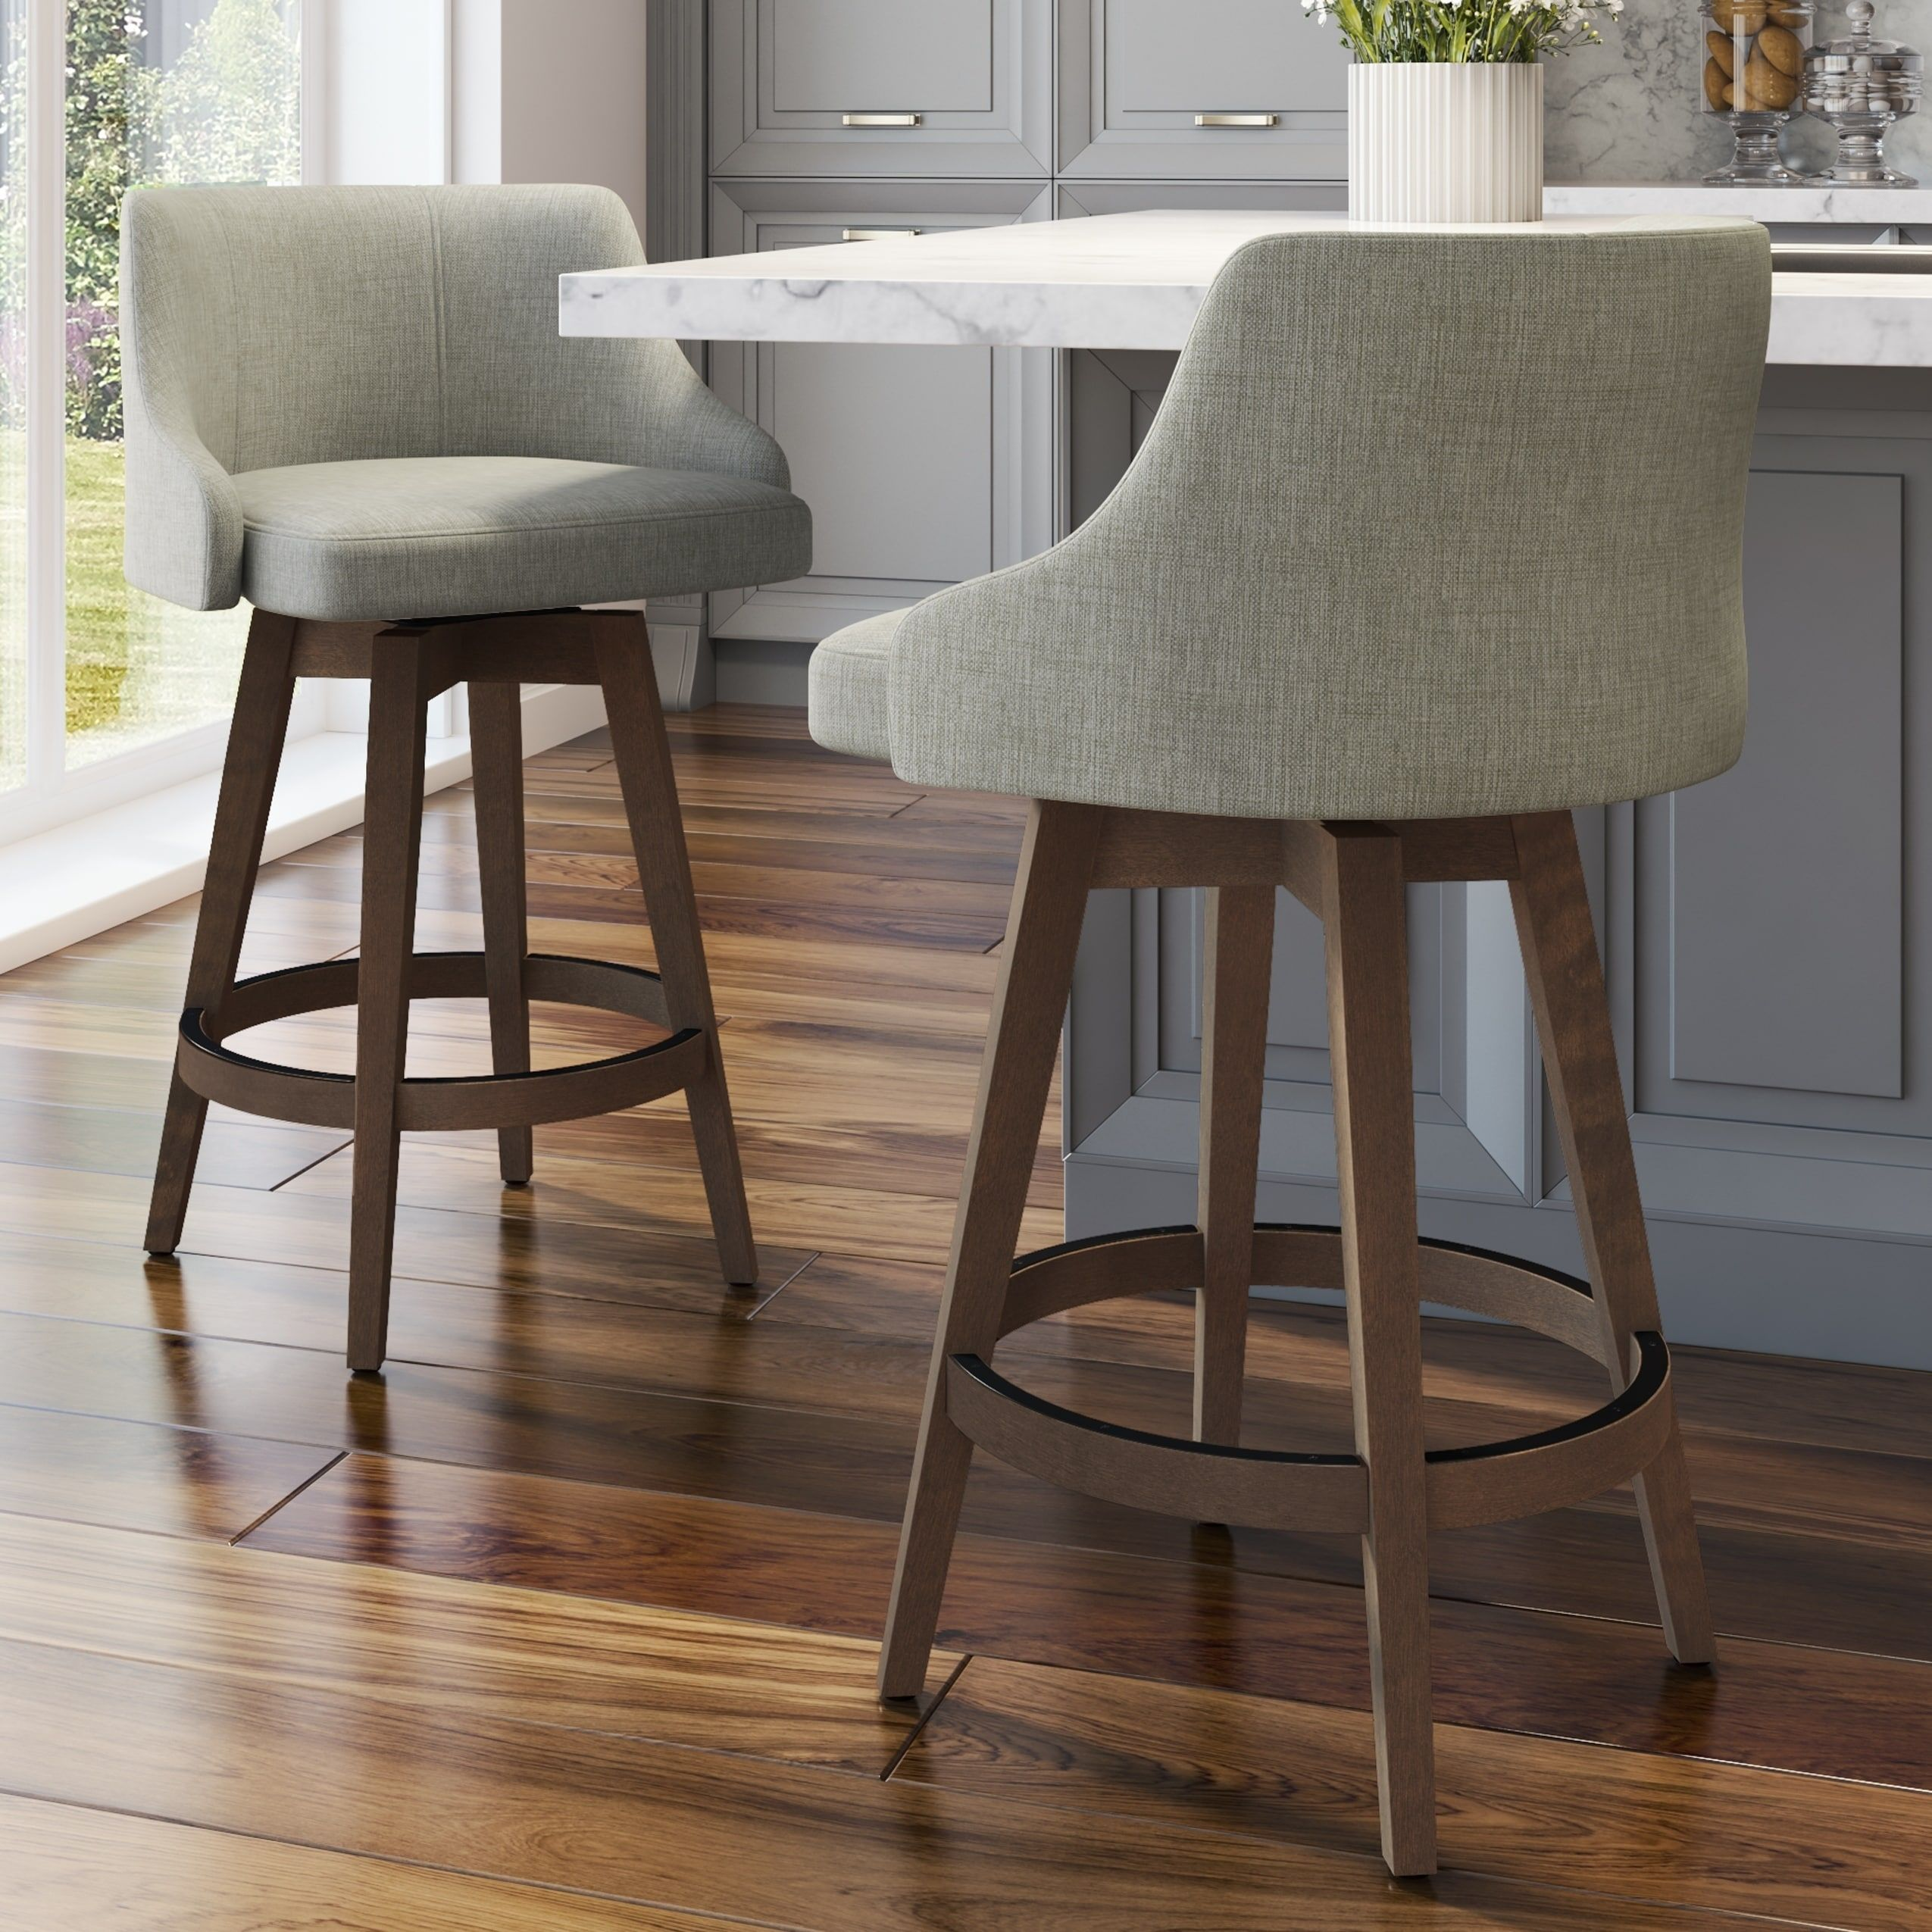 Carson Carrington Corbet Stool With Wood Base 26 Counter Height